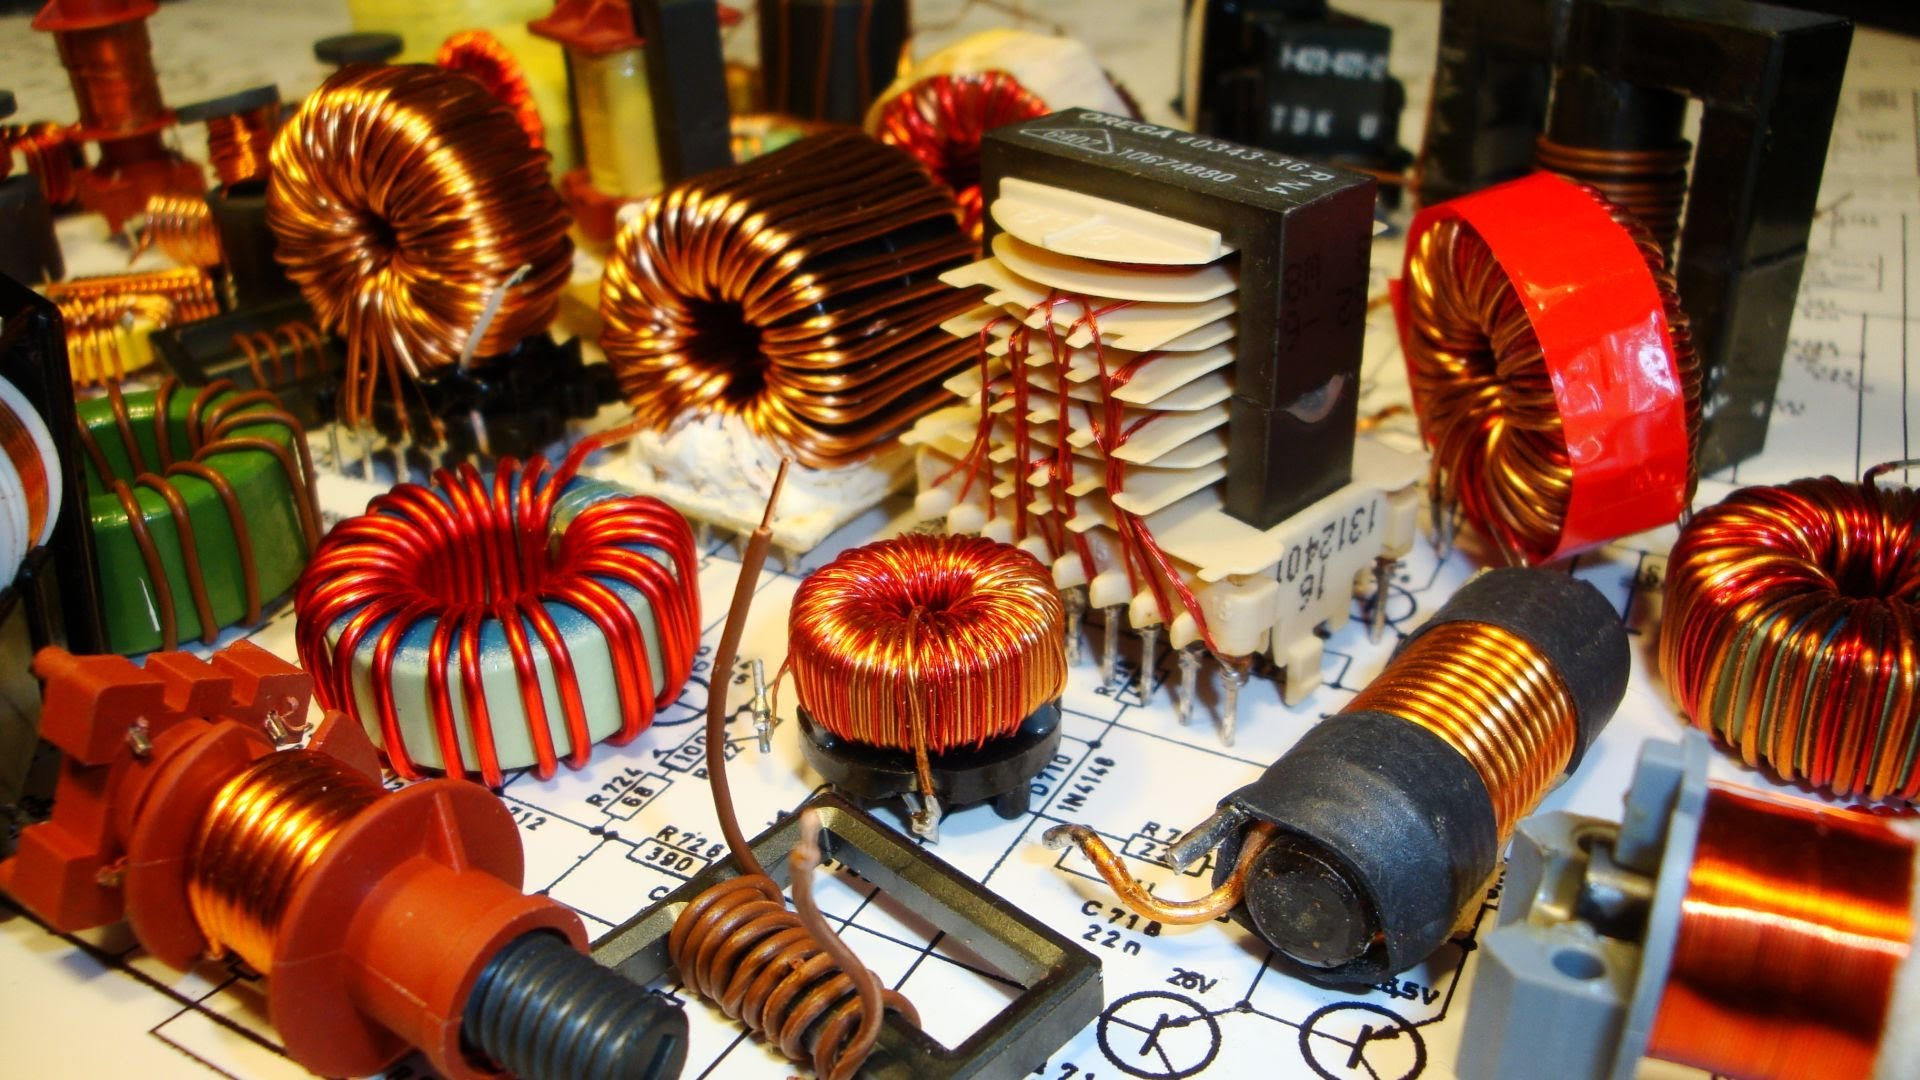 Consultancy In Electromagnetic Devices Magnetic Power Supply Circuit Design Tutorial E8b5be E66dc4c193834ae9b2f41b84dadbdca4mv2